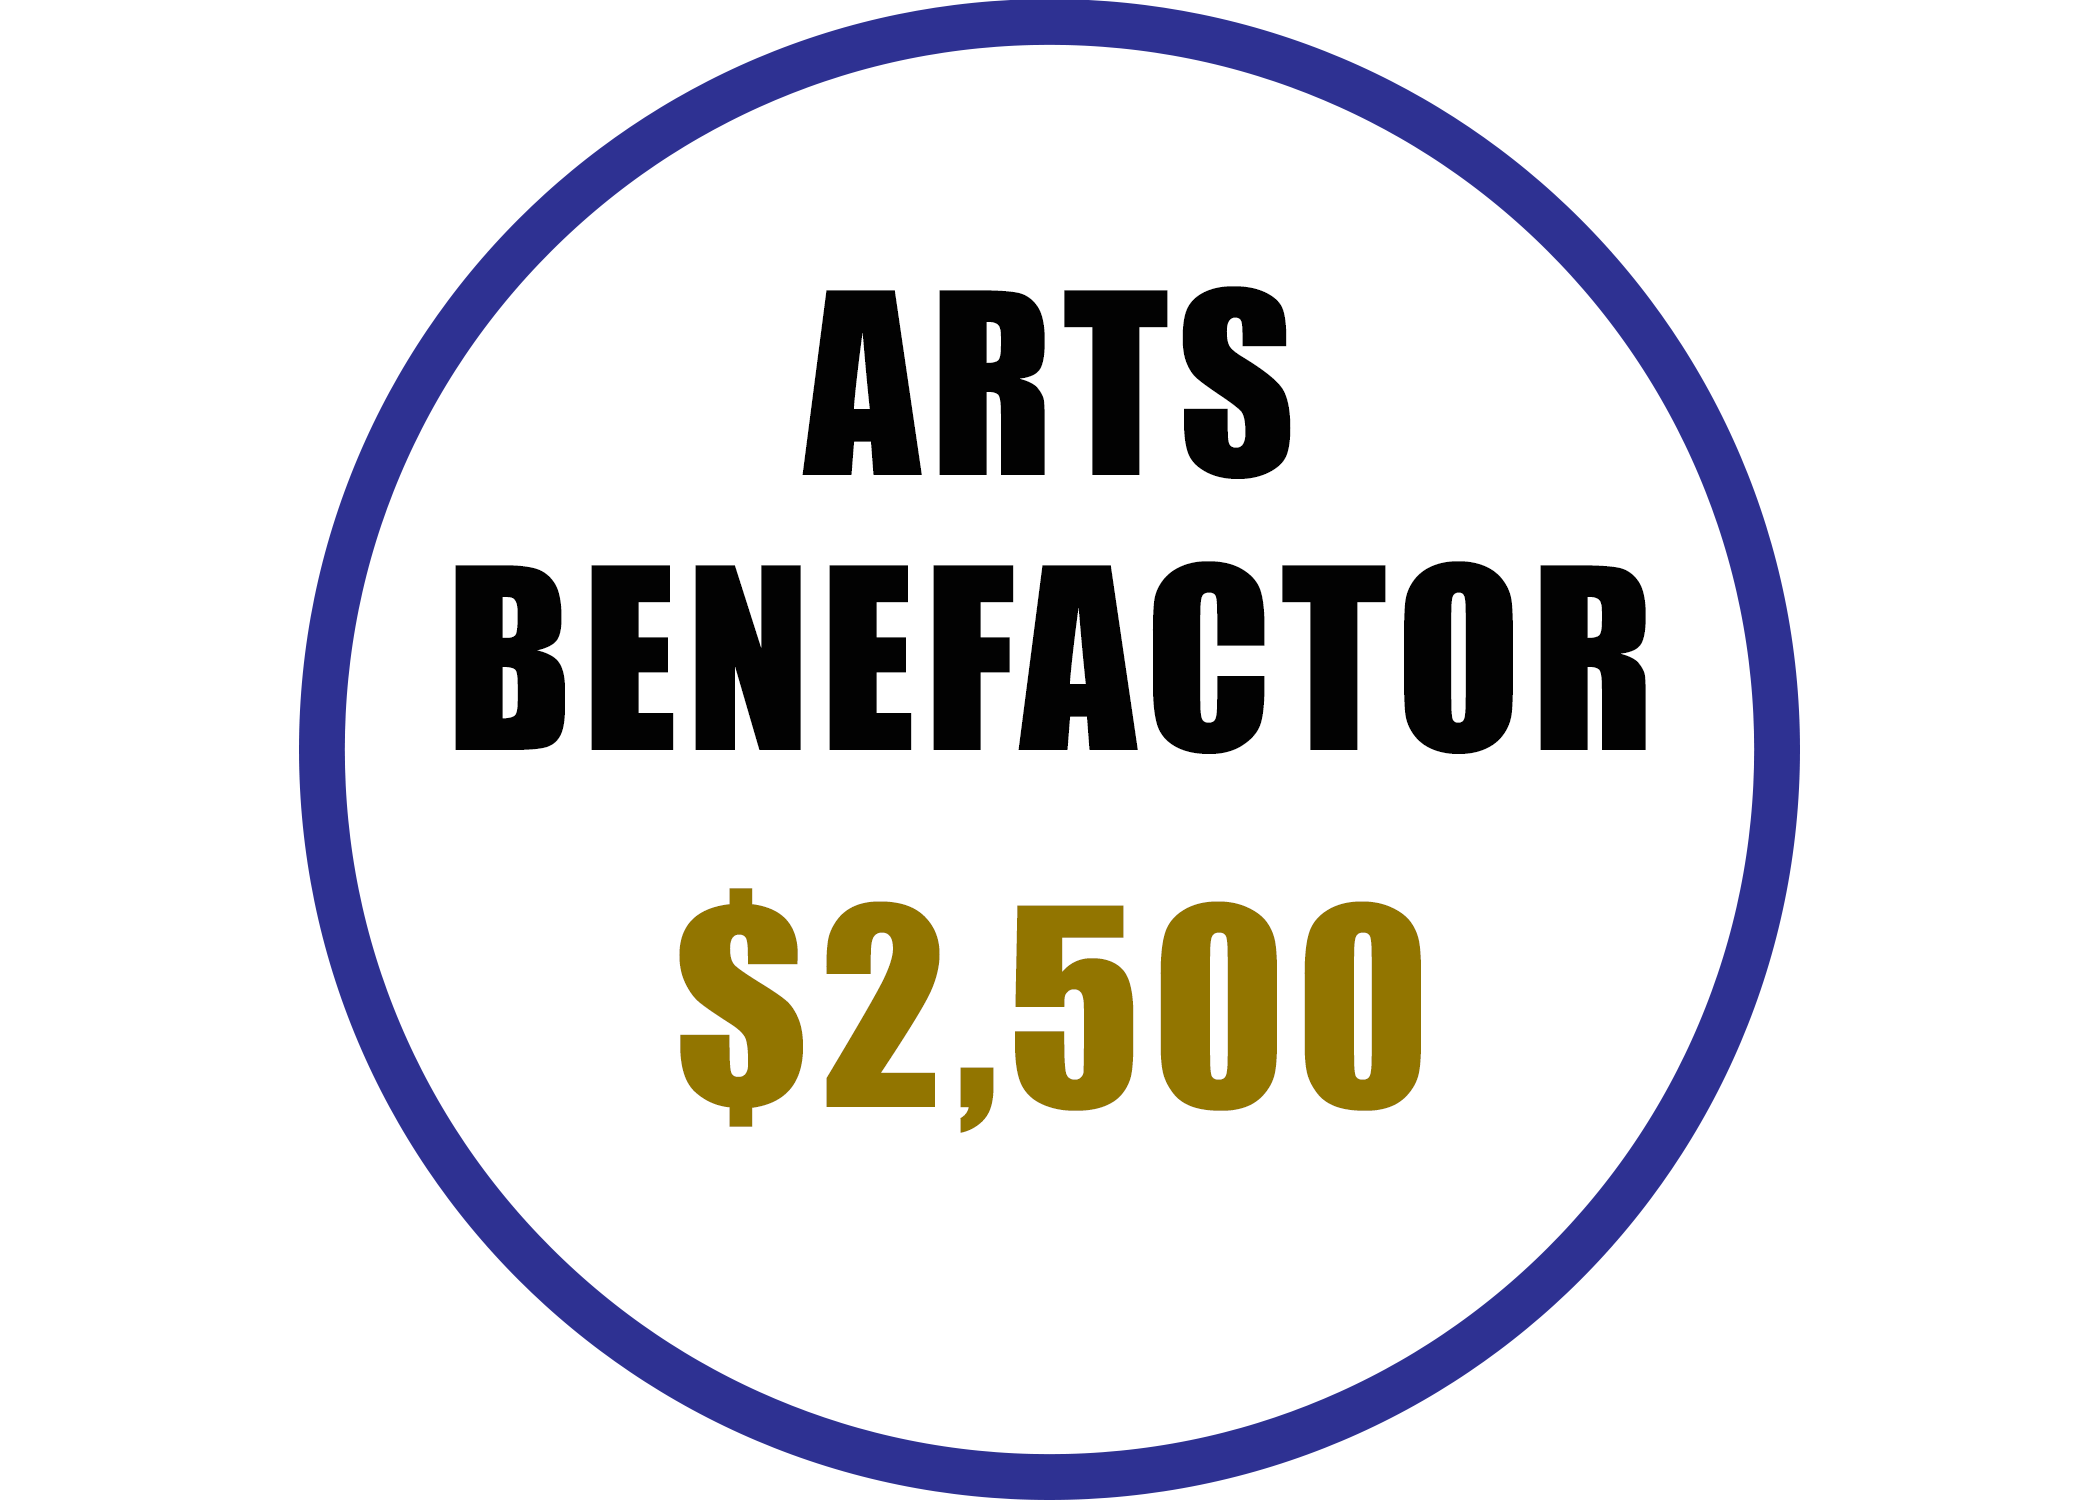 Arts Benefactor benefits include:  -Recognition on the Arts Council website  -Voting rights at the Annual Meeting -20% discount on Artsplosion! Camps for kids -4 VIP passes at Ebb & Flow Festival -40% discounted rental at Arts Council venues -Advance ticket purchase opportunity for River City Jazz Master Series -VIP access to River City Jazz Masters concerts -Priority invitation to Art Routes trips